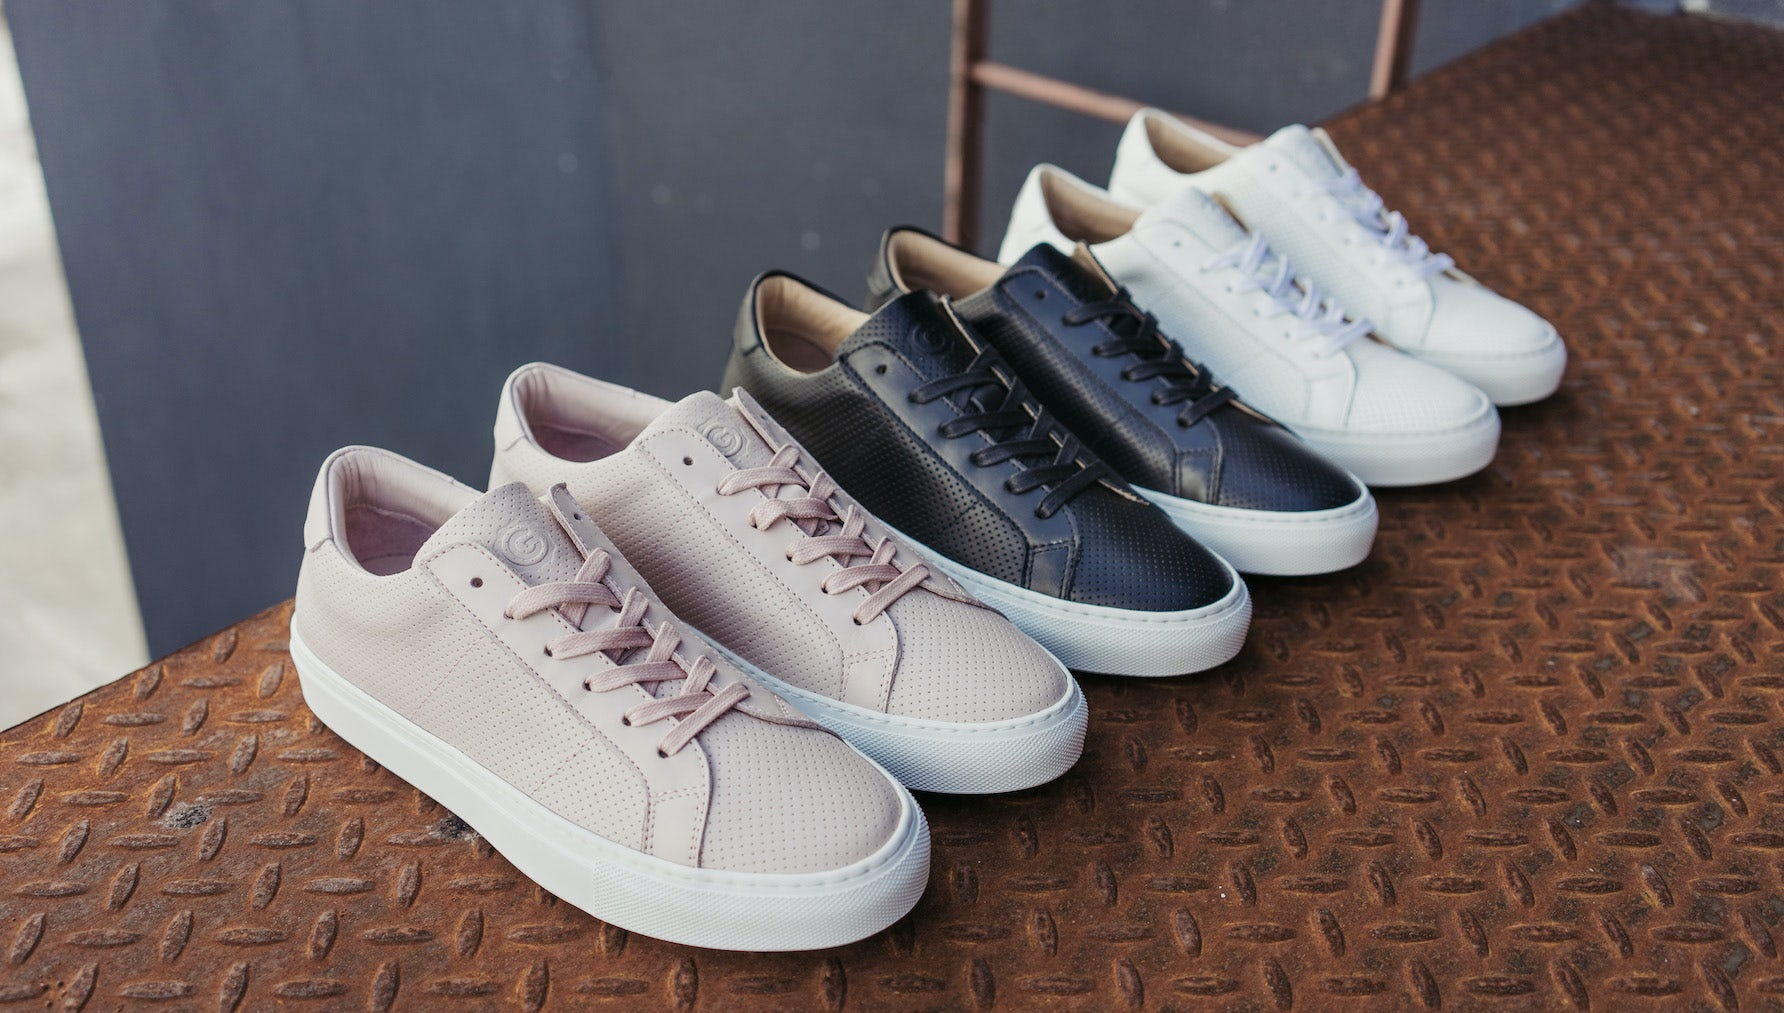 Greats sneakers | Source: Courtesy